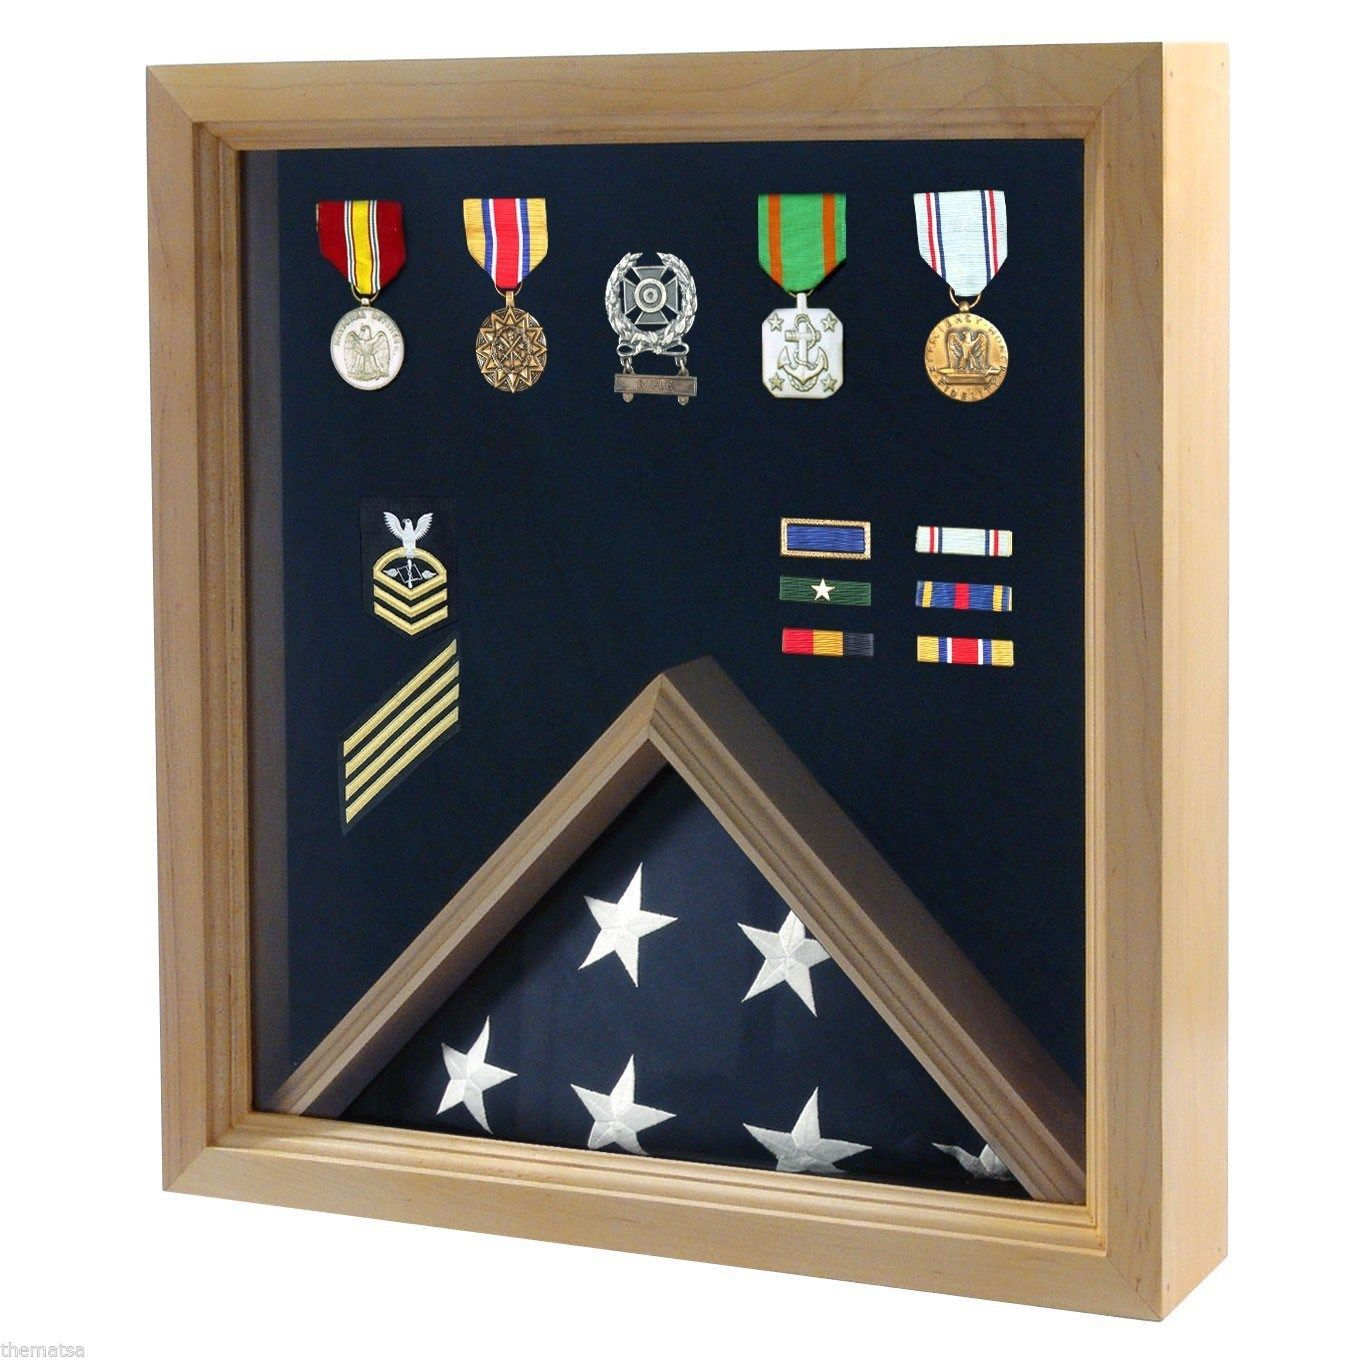 Primary image for USA MADE SOLID WOOD OAK FINISH MILITARY FLAG MEDAL DISPLAY CASE SHADOW BOX